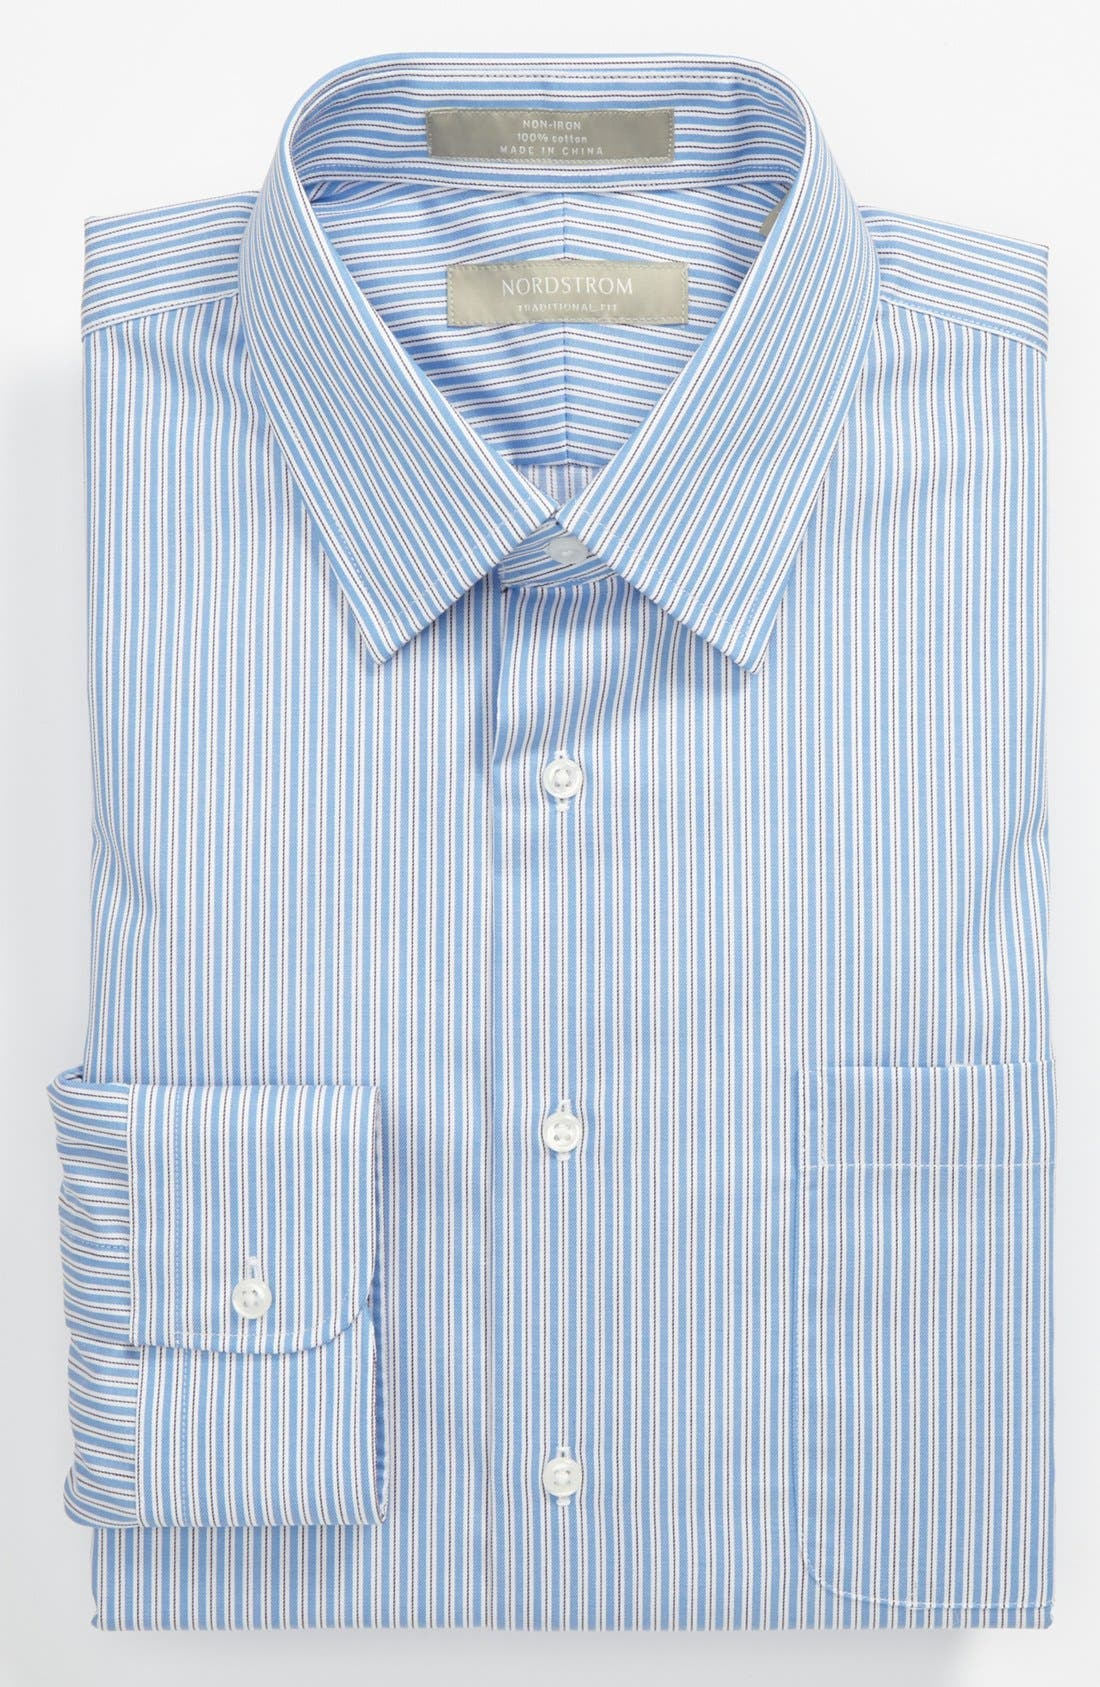 Alternate Image 1 Selected - Nordstrom Traditional Fit Dress Shirt